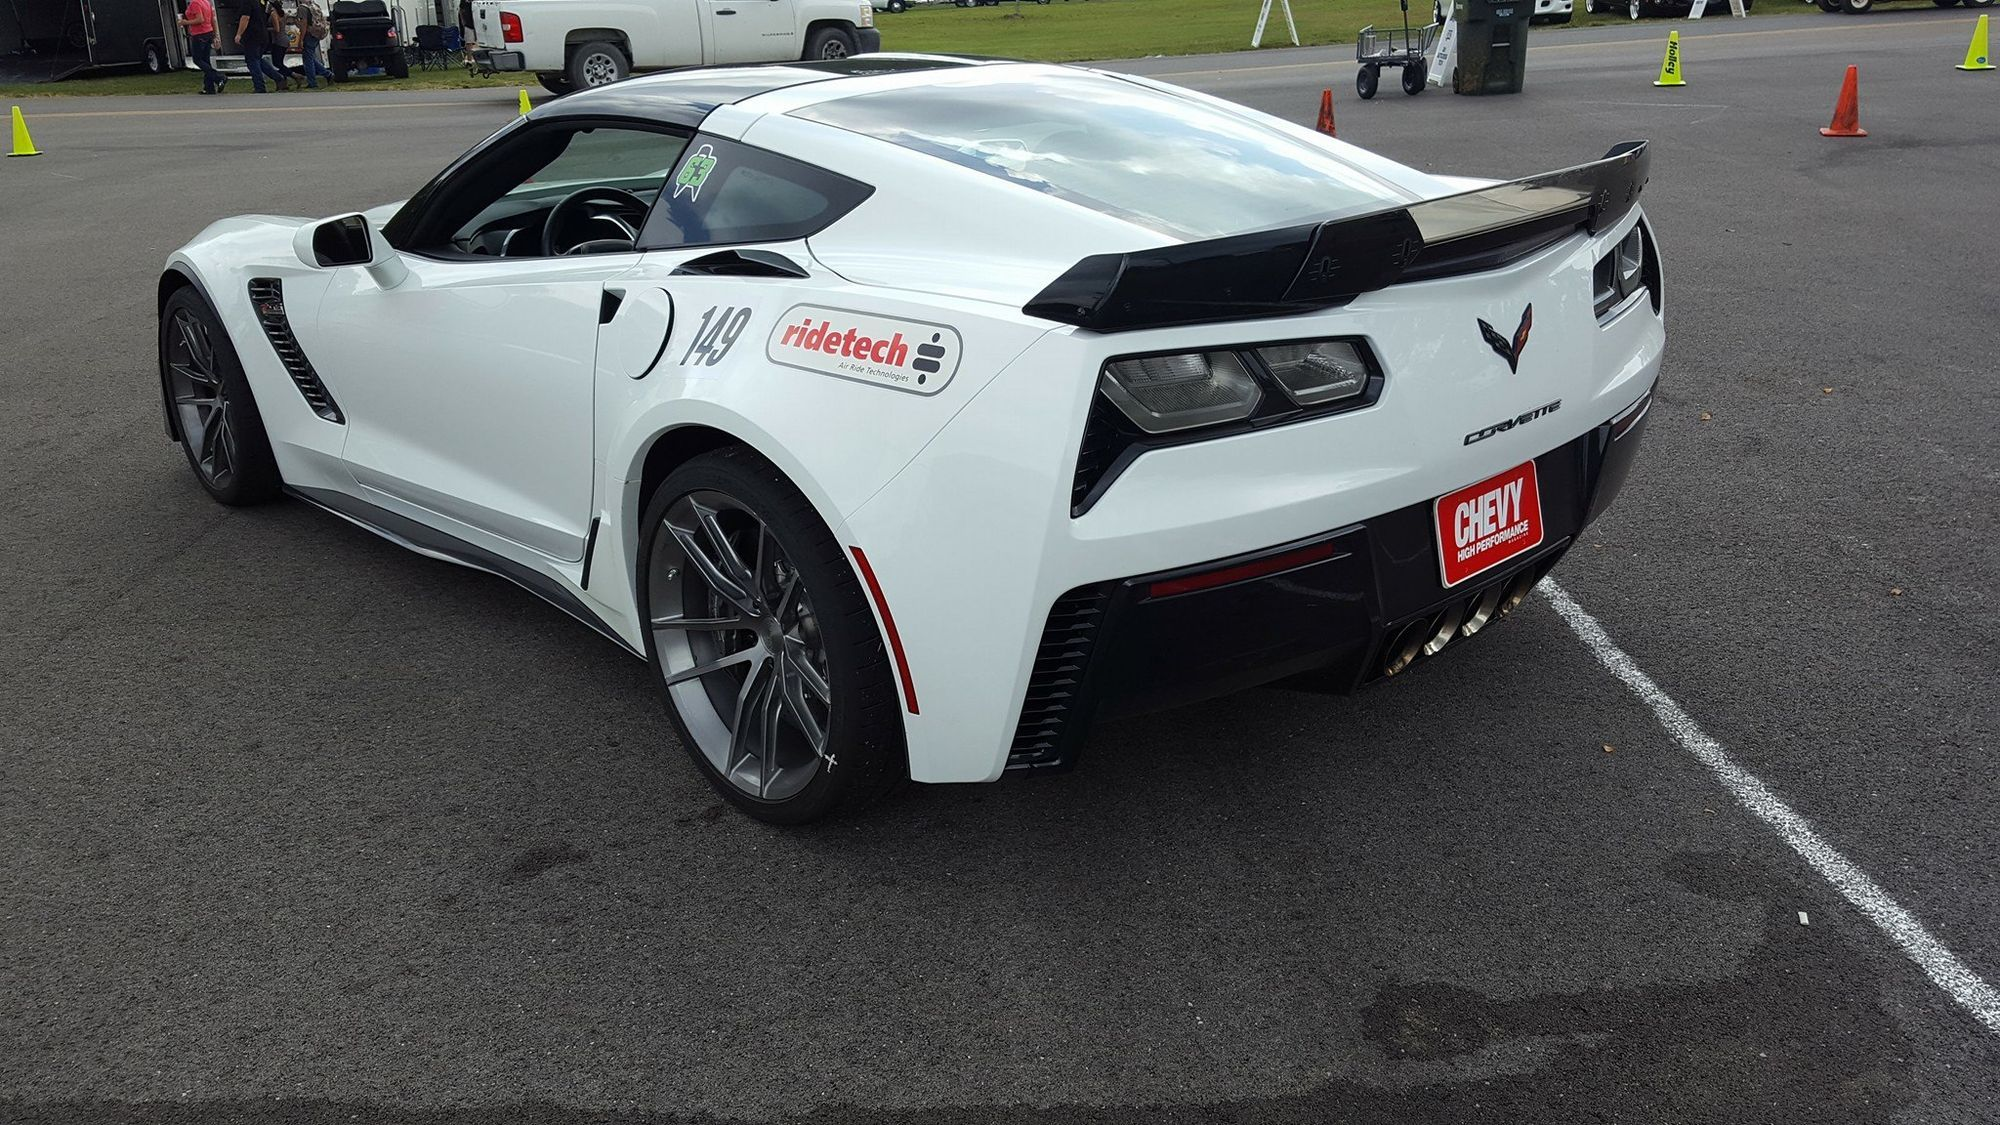 2017 Chevrolet Corvette Z06 | Bret Voelkel Wins 3S Challenge at the 2016 LS Fest in the RideTech C7 Corvette Z06 on Forgeline One Piece Forged Monoblock AR1 Wheels